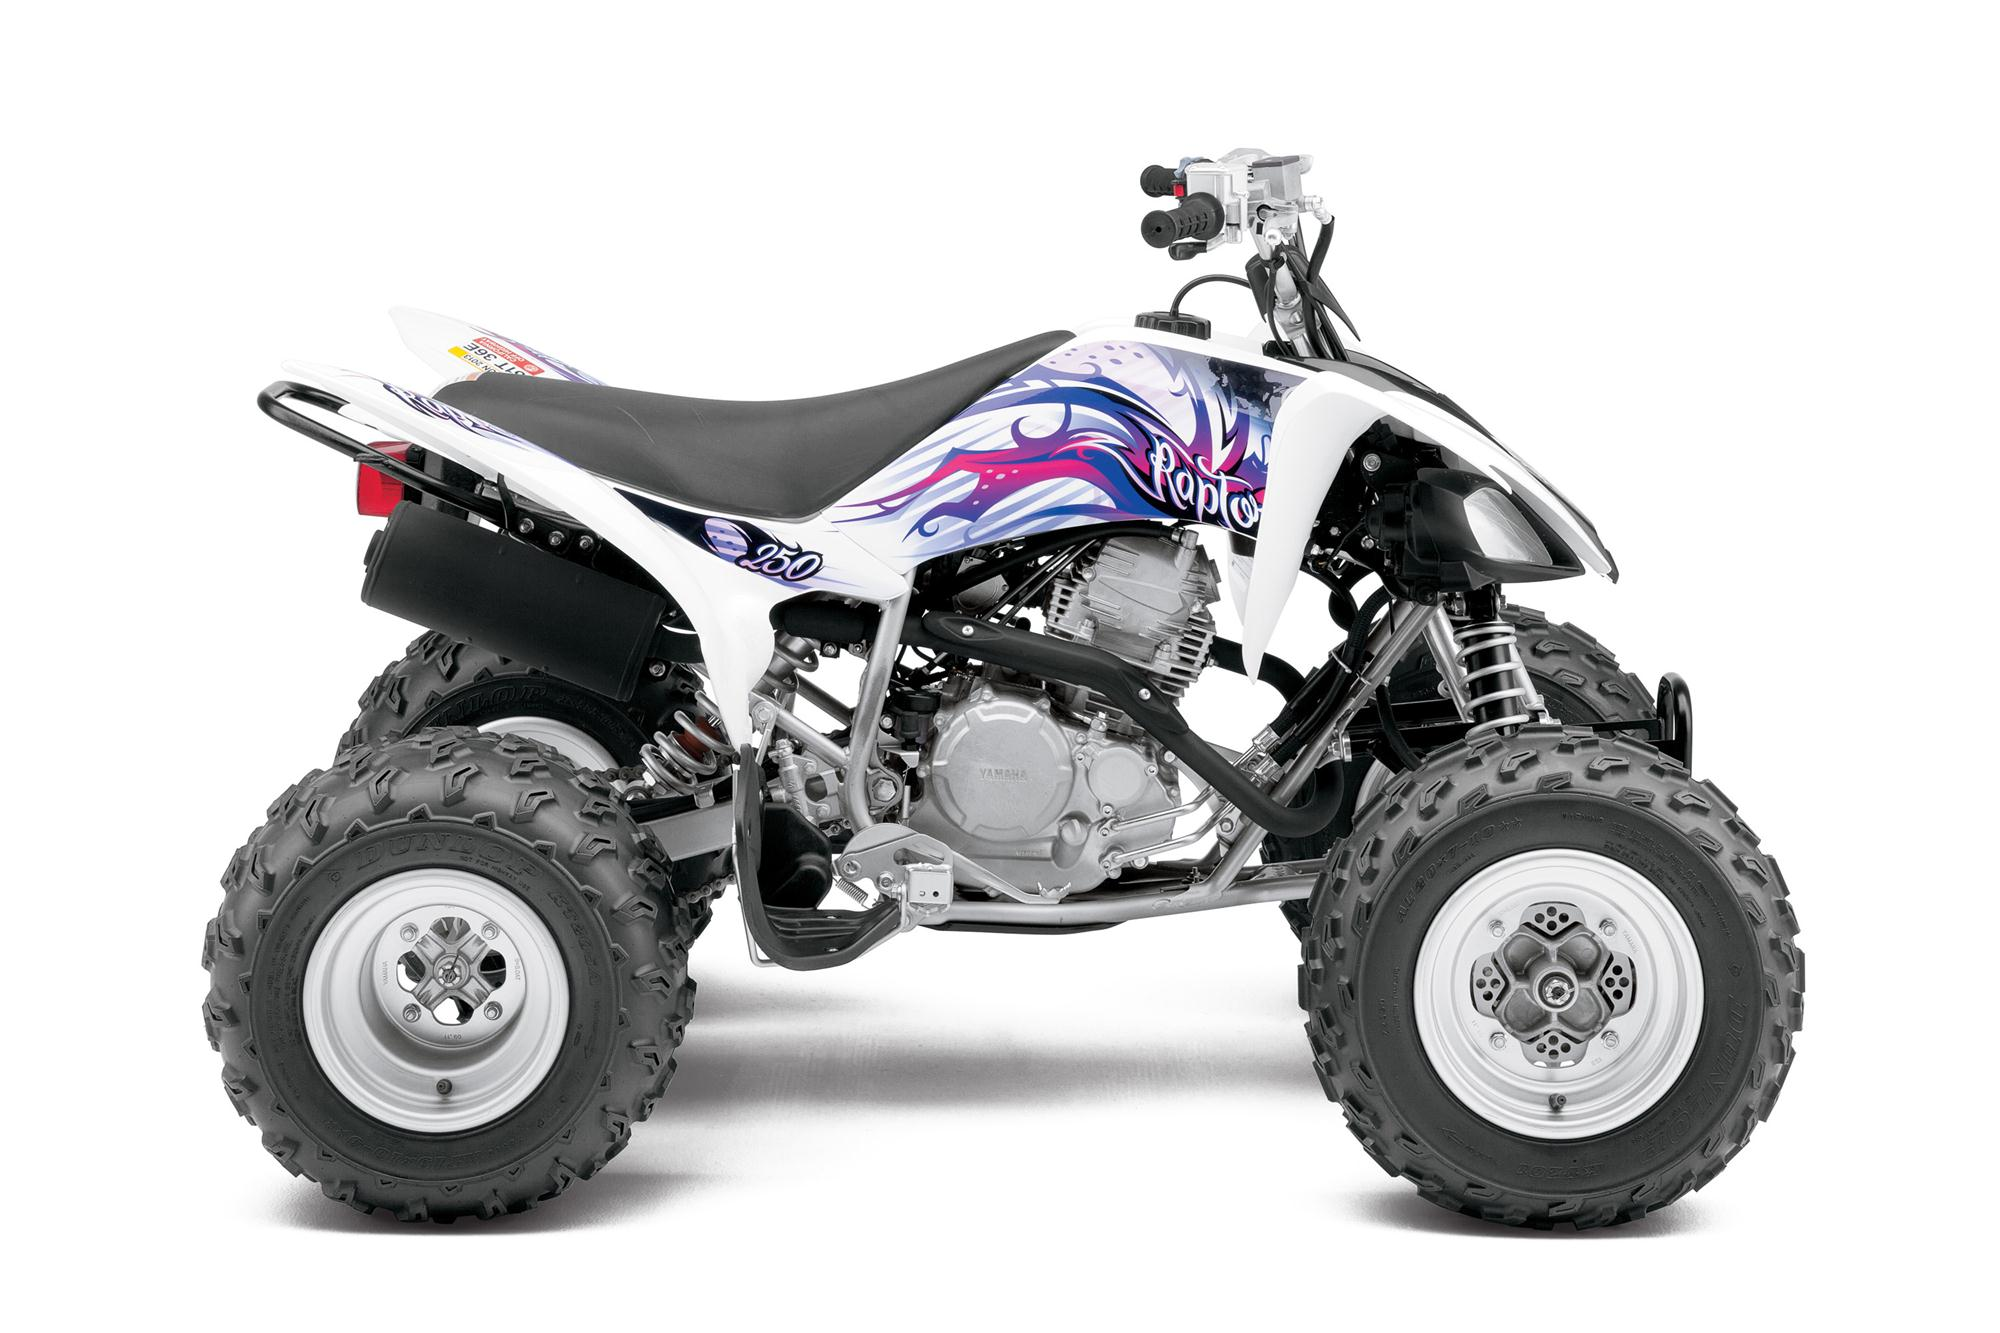 2013 Yamaha Raptor 250 Atv Reviews Videos Pictures And Atv